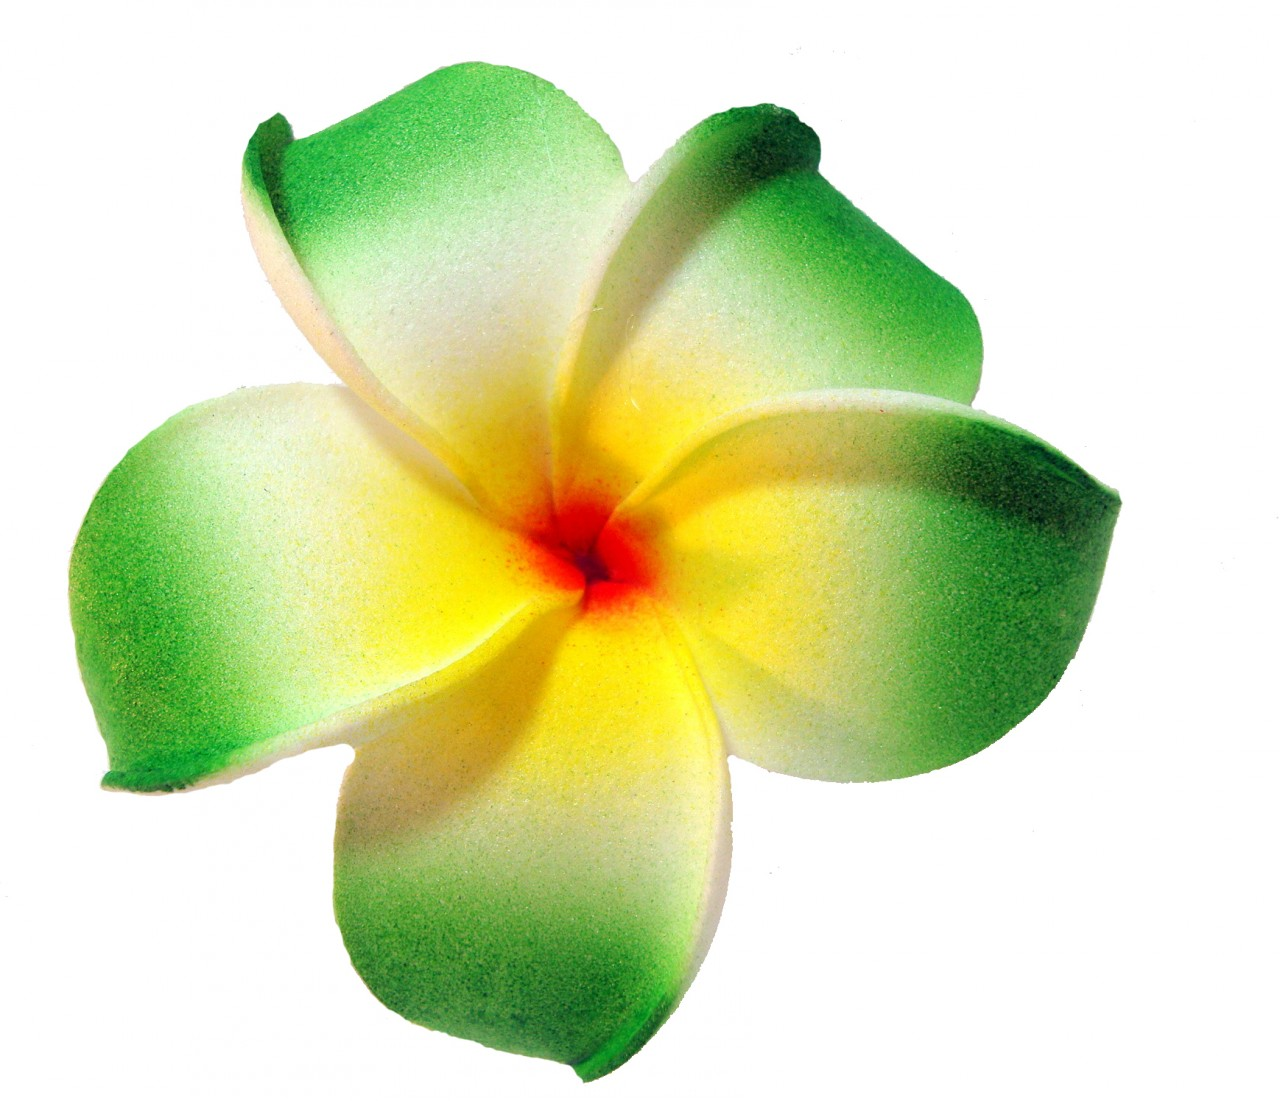 Plumeria clipart #2, Download drawings